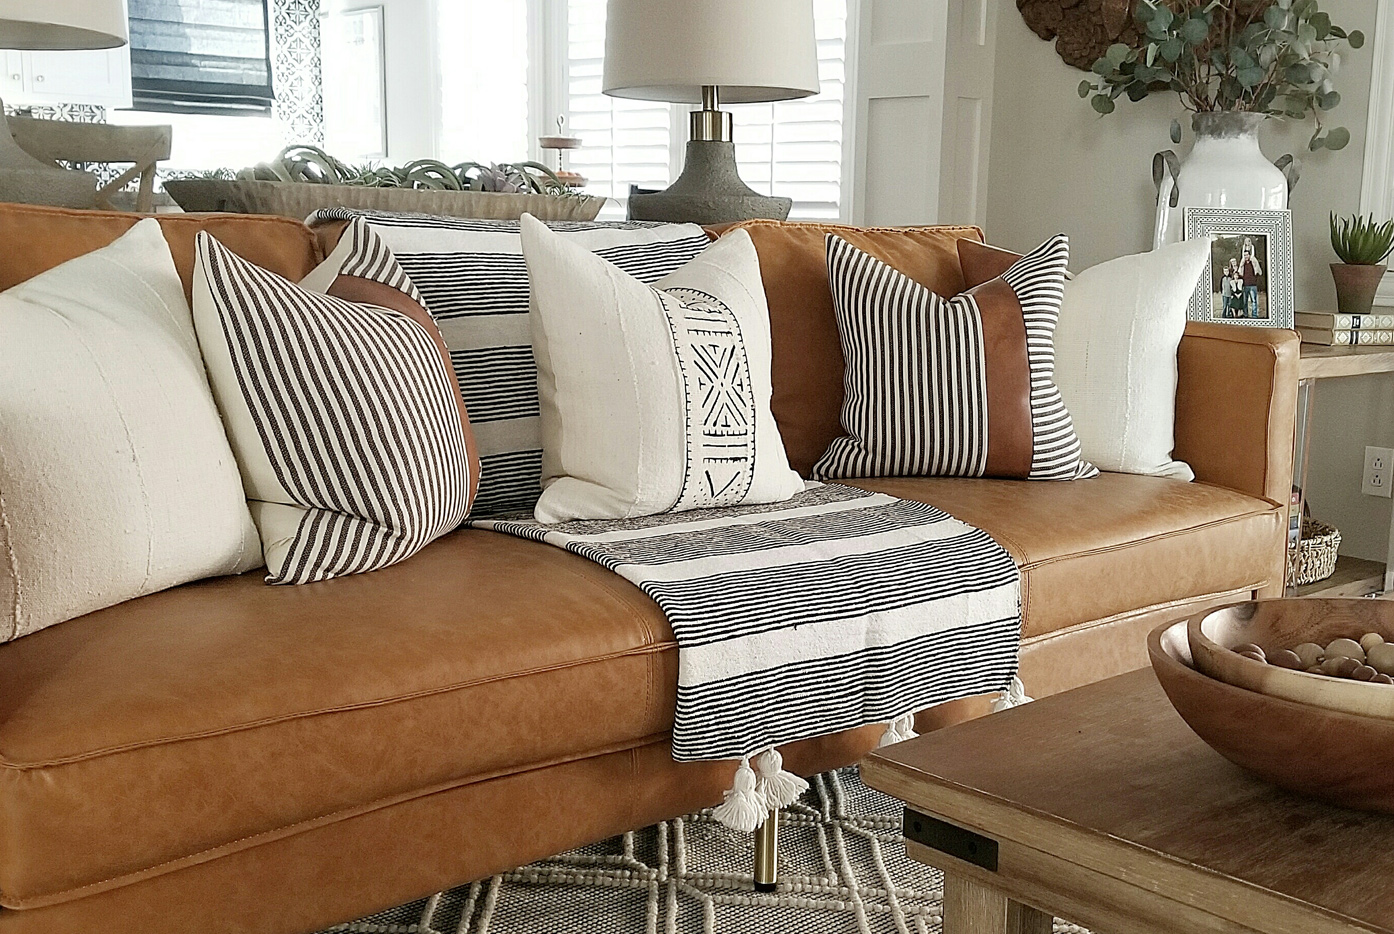 DIY Makeover: Bring Life To Your Sofa